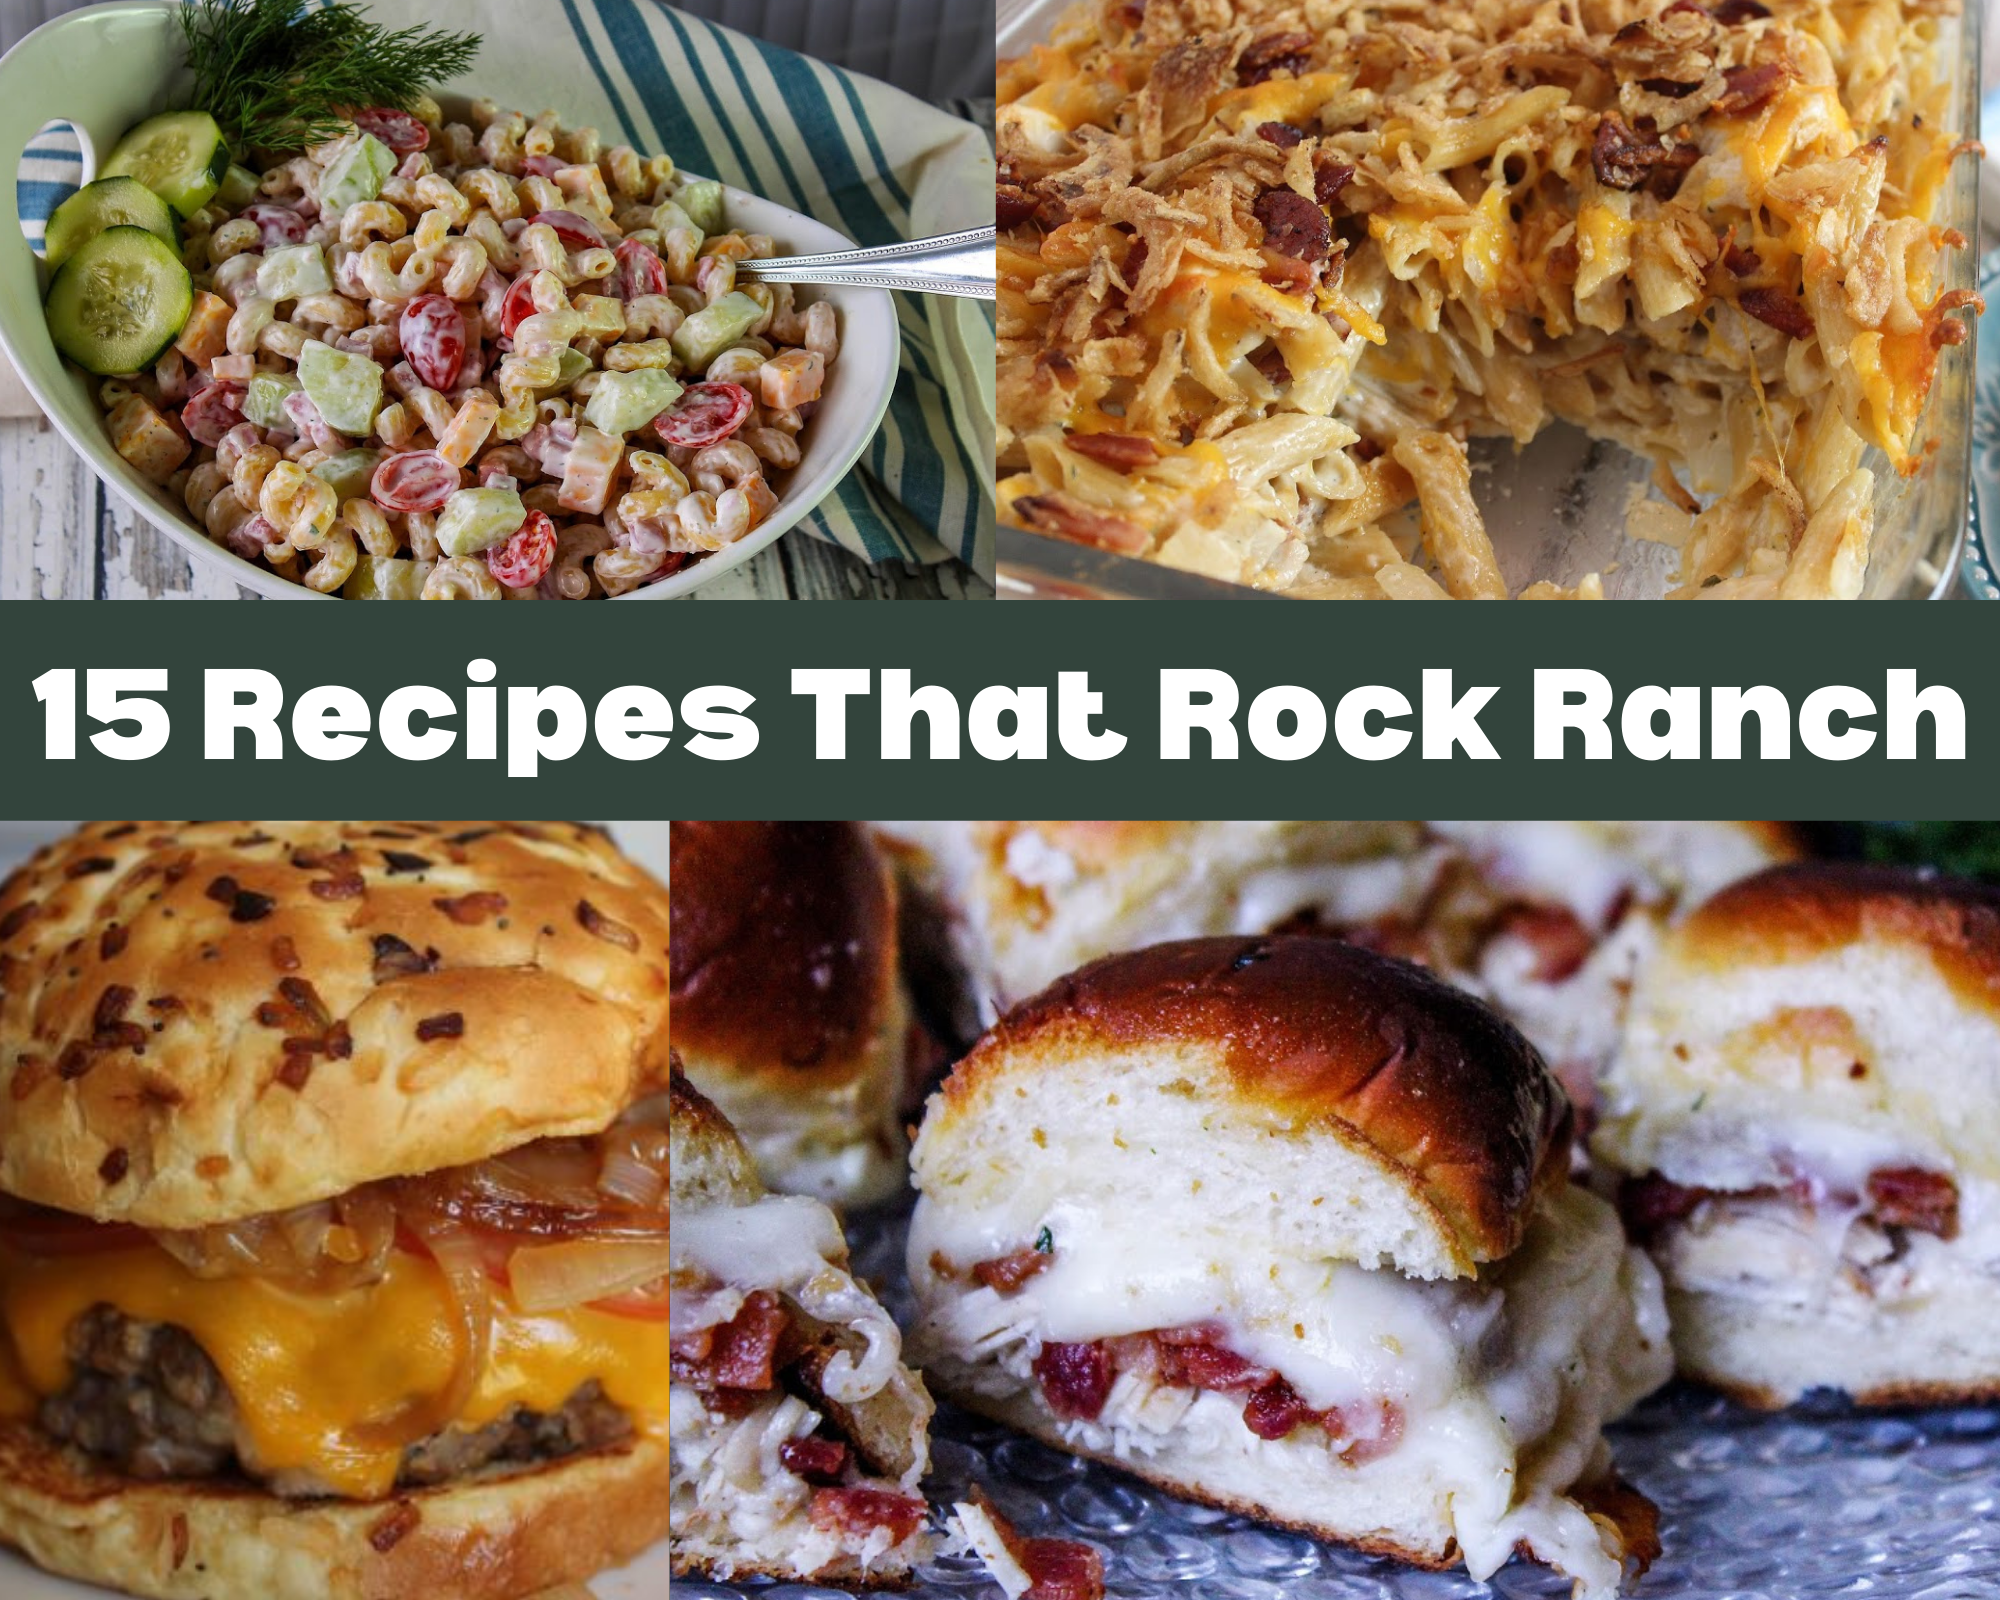 recipes that feature ranch flavoring